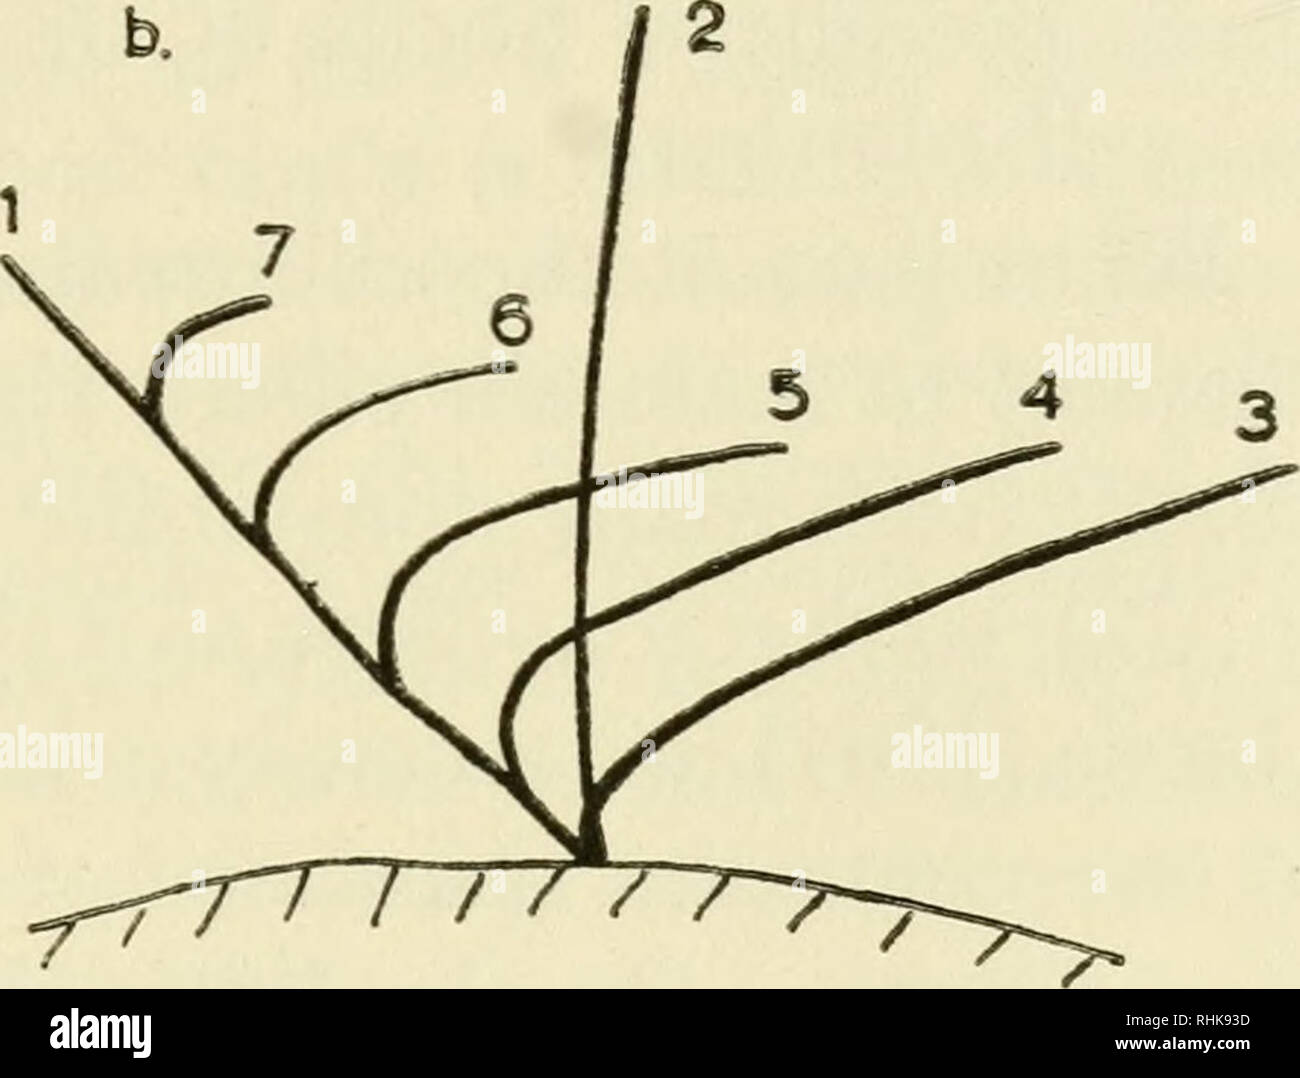 hight resolution of  the biology of cilia and flagella cilia and ciliary motion flagella microbiology fig 40 diagrams showing the sequence of movements of cilia of a